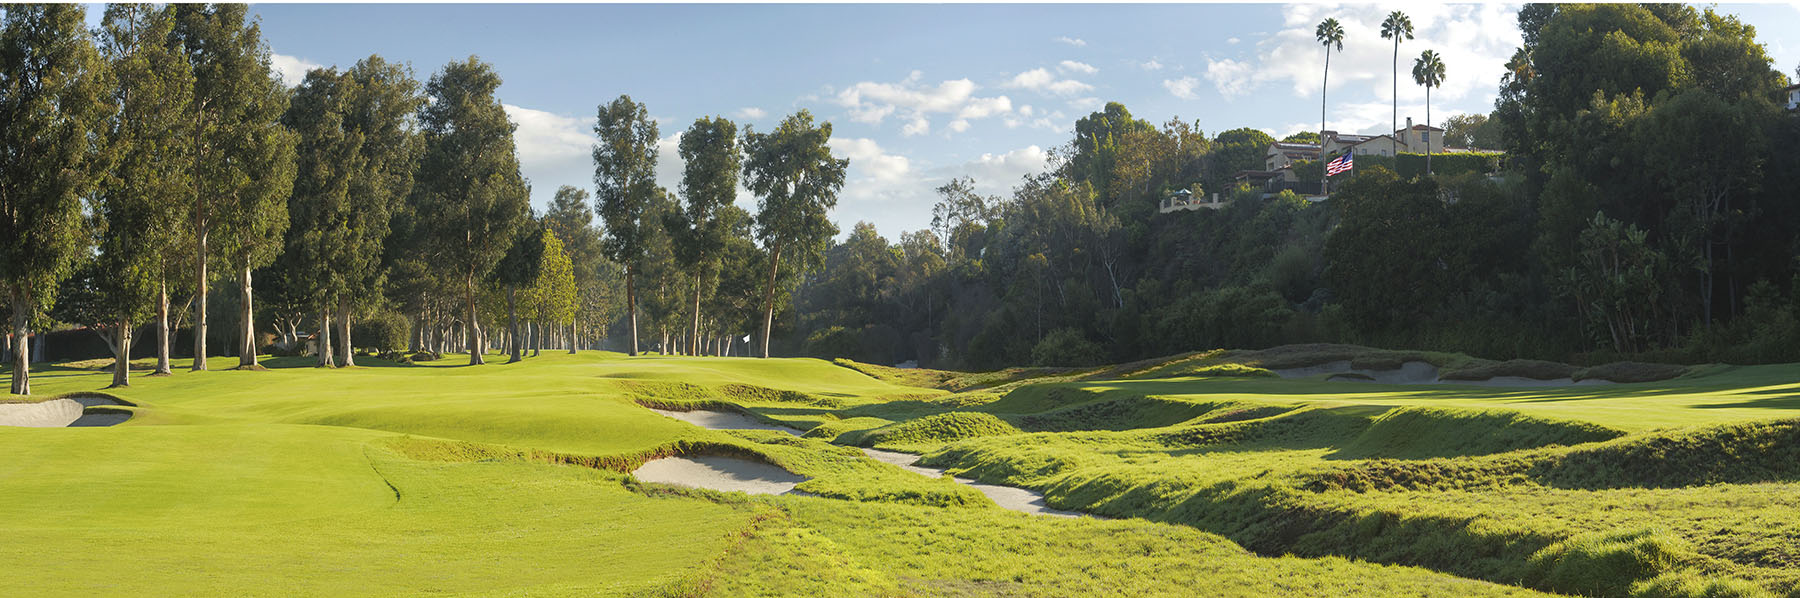 Golf Course Image - Riviera Country Club No. 8